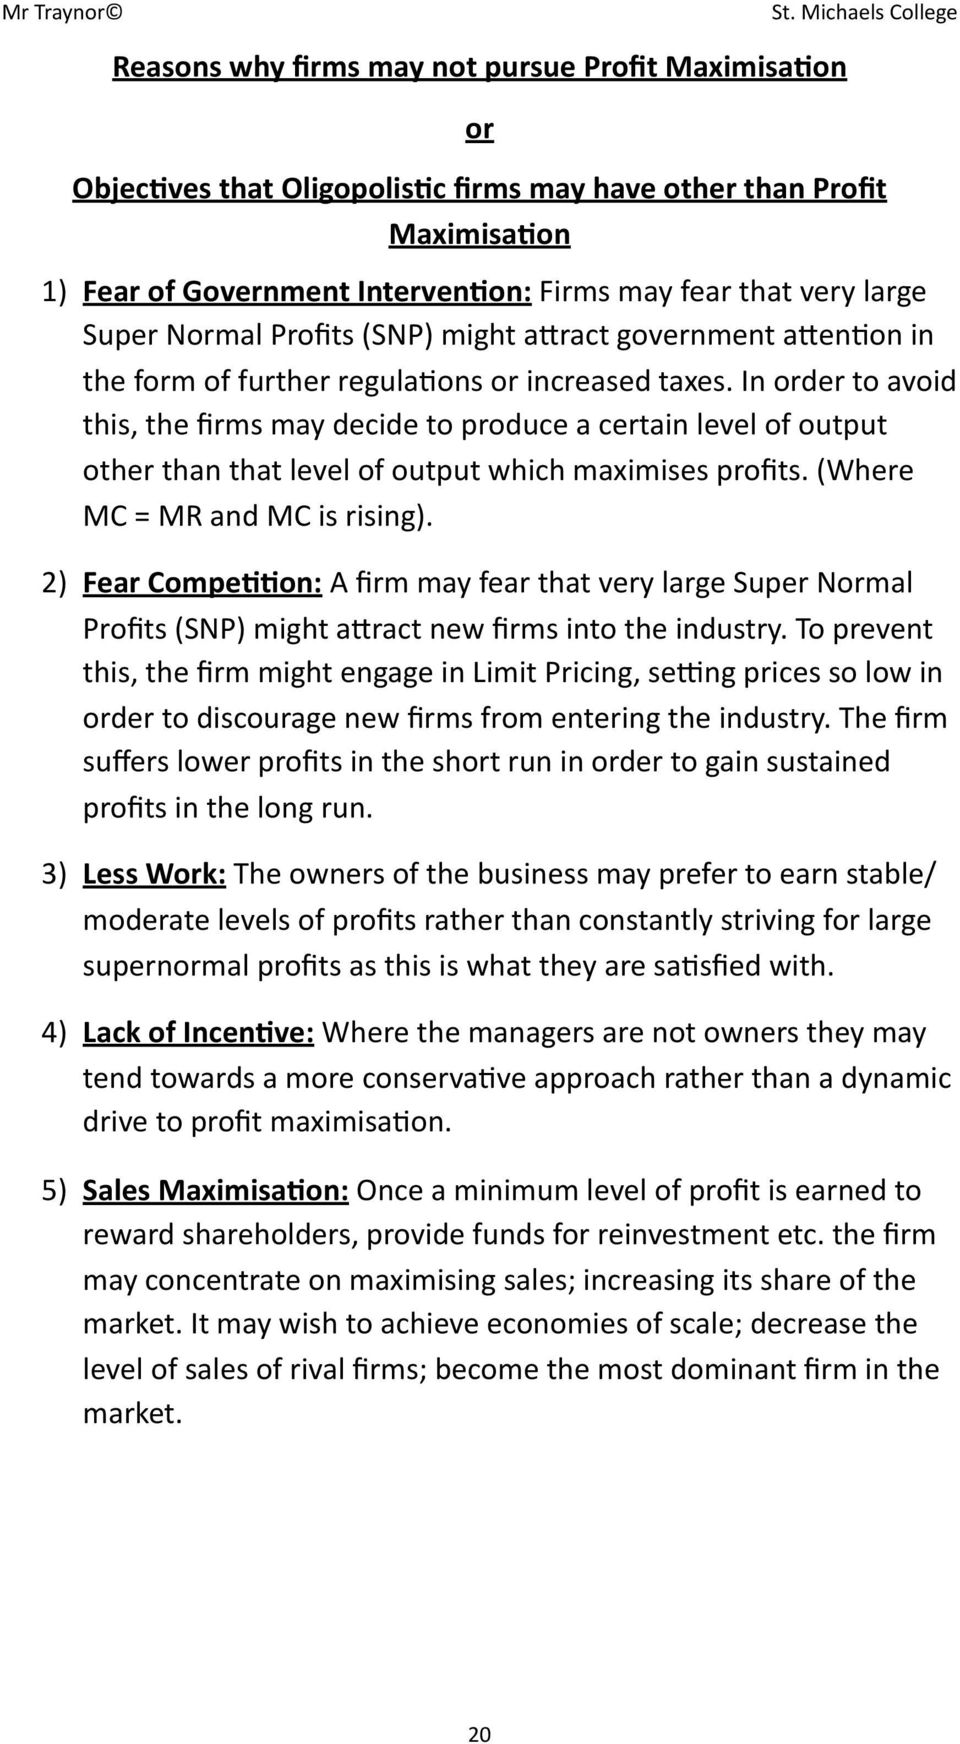 In order to avoid this, the firms may decide to produce a certain level of output other than that level of output which maximises profits. (Where MC = MR and MC is rising).